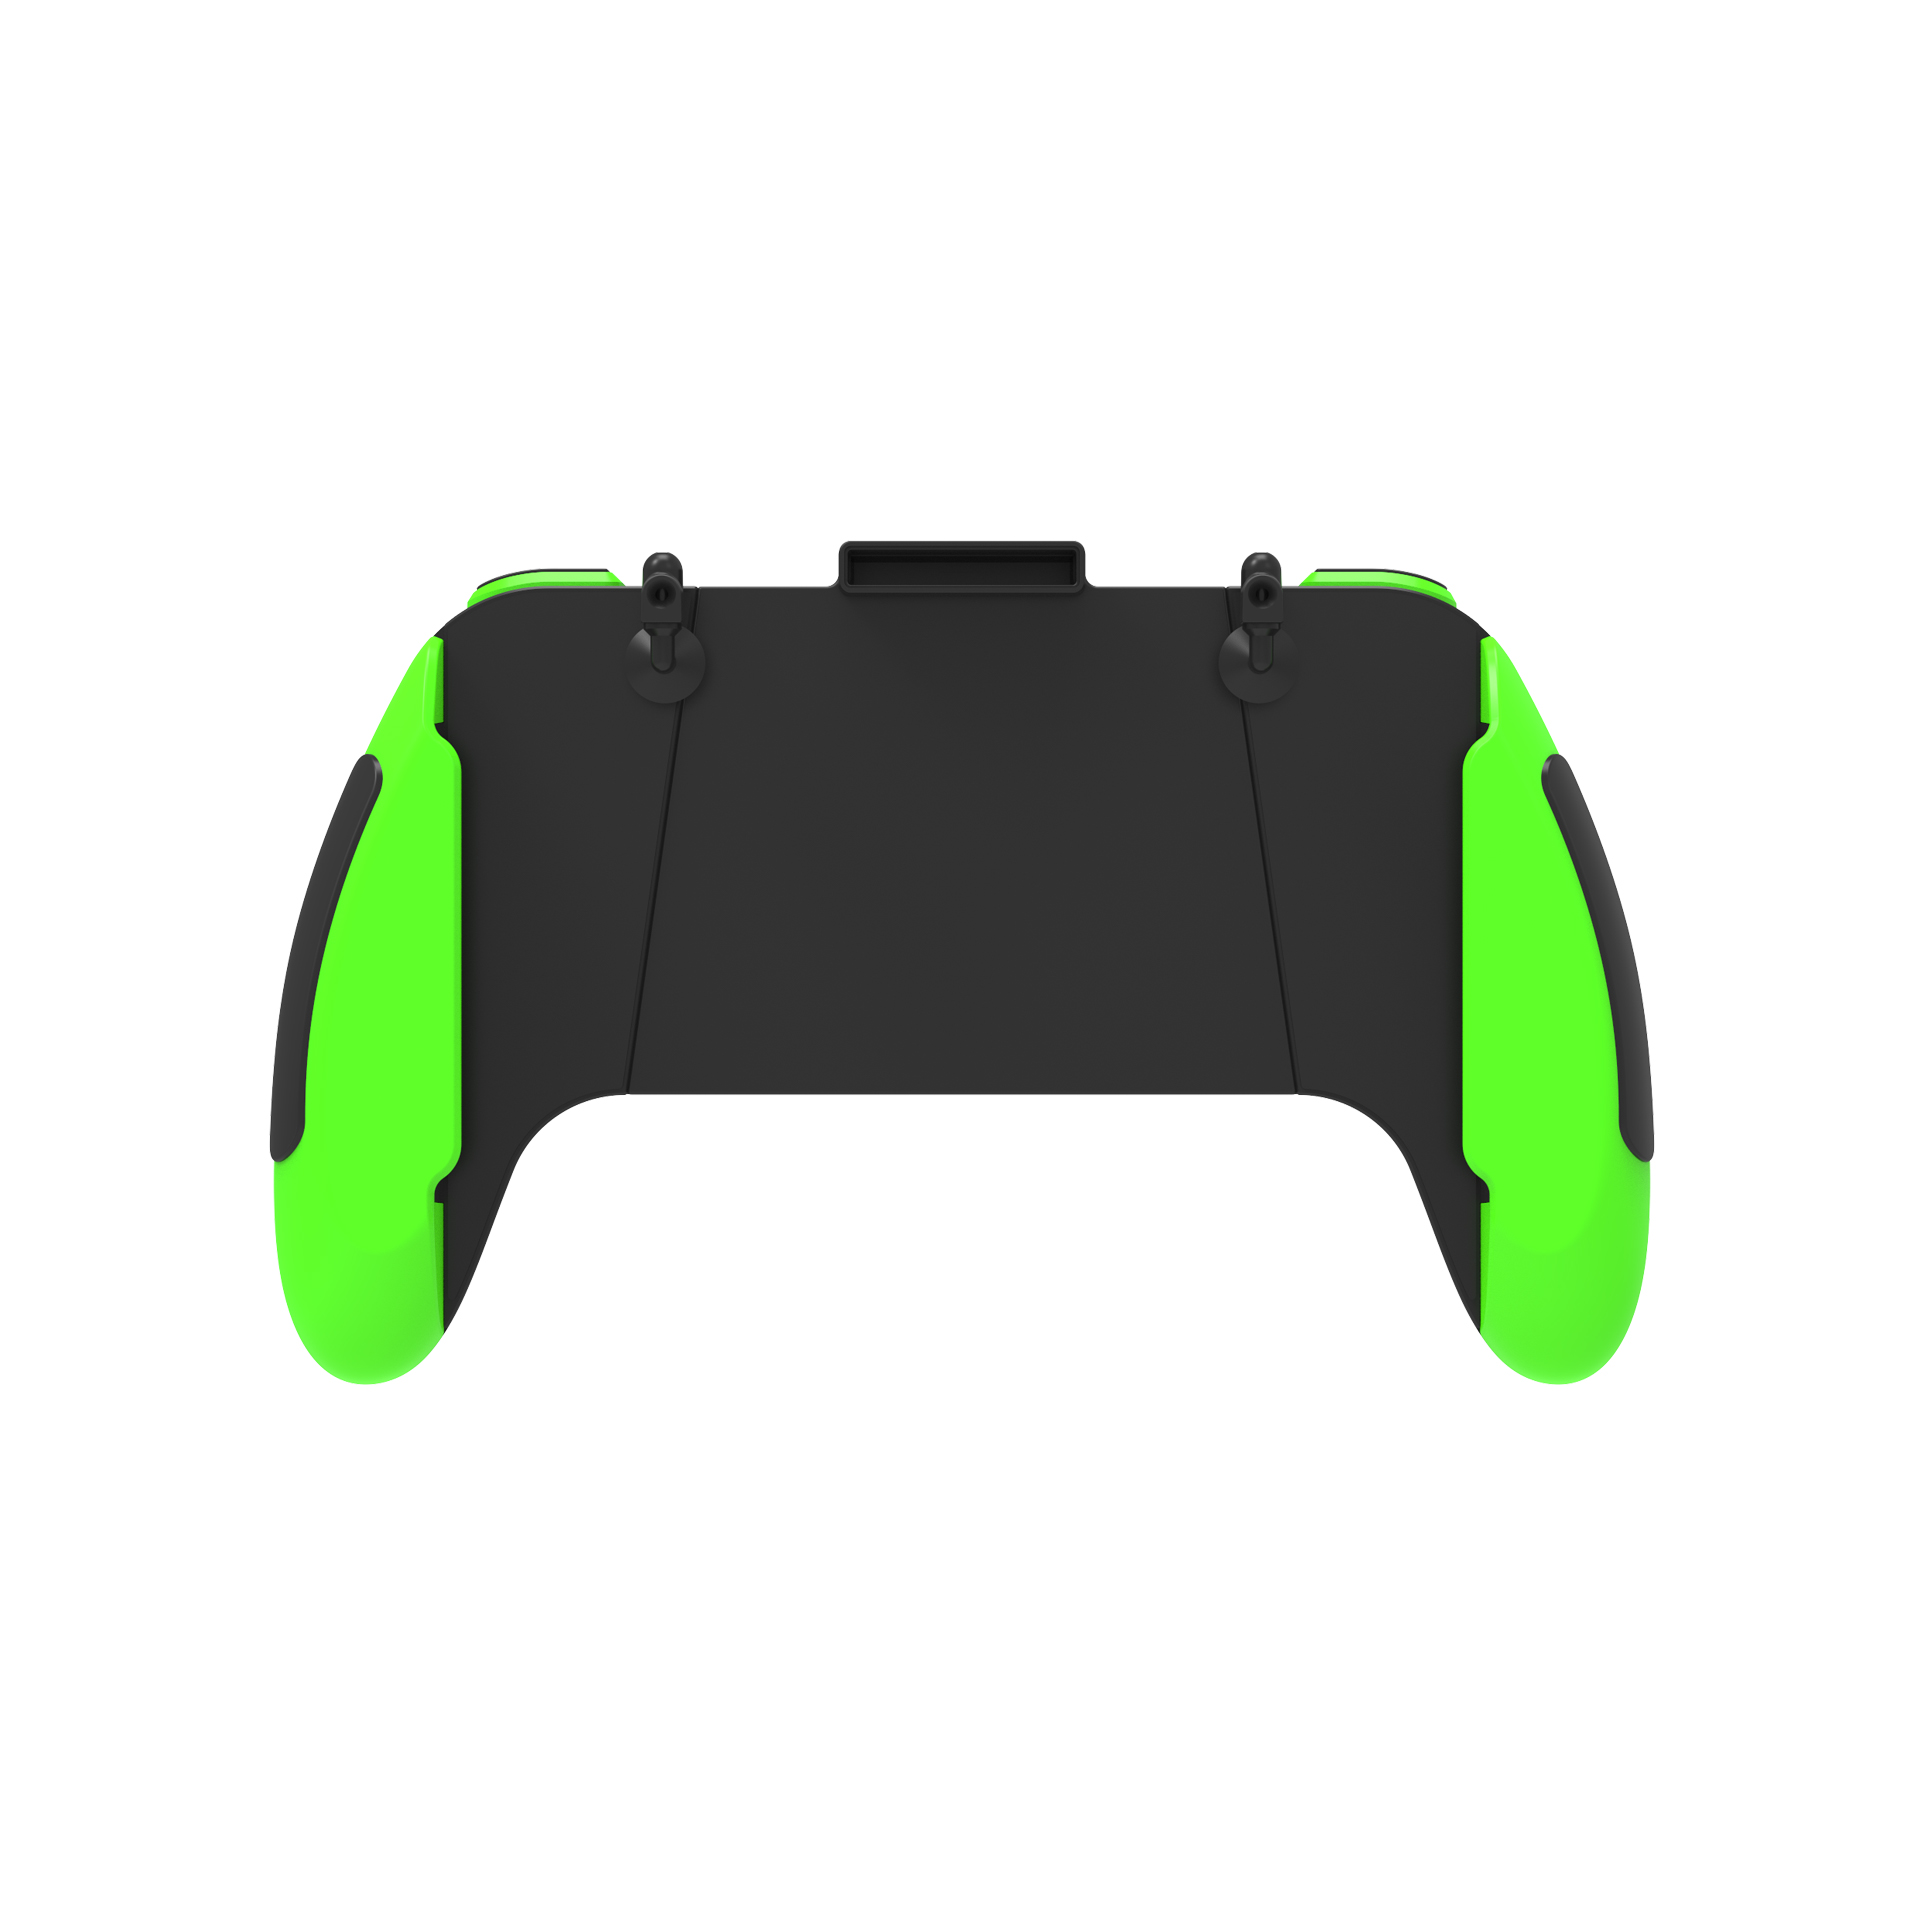 Super Hot PUBG game mobile <strong>controller</strong> with L1Shooter Trigger R1 Fire Button to play Fortnite